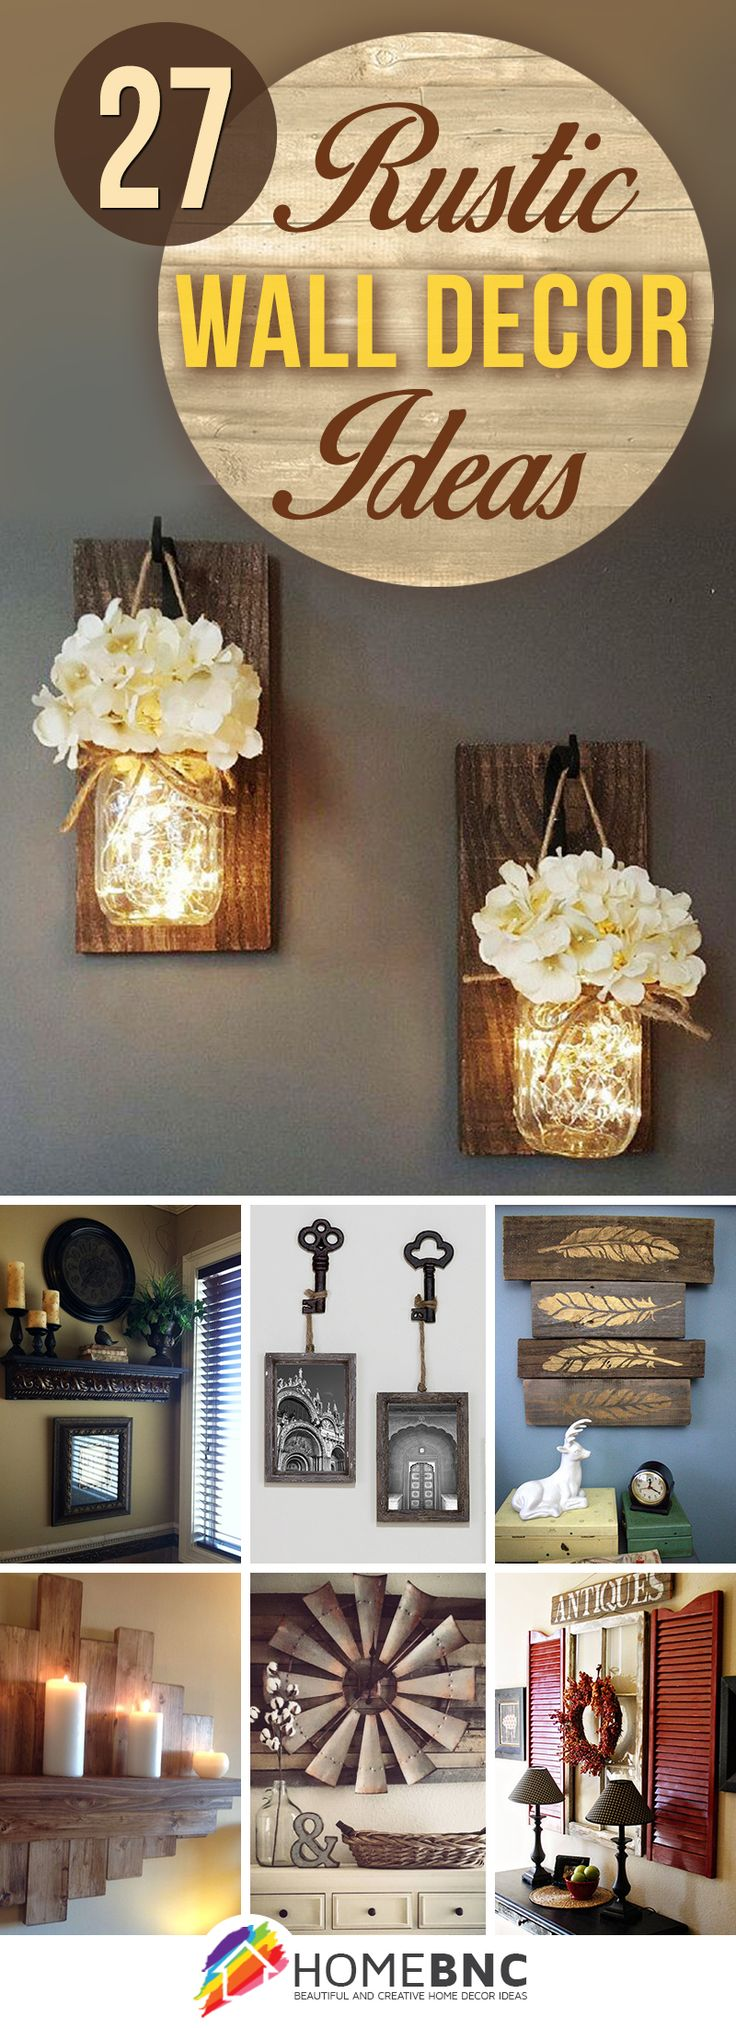 27 Rustic Wall Decor Ideas to Turn Shabby into Fabulous. Best 25  Wall decorations ideas only on Pinterest   Home decor